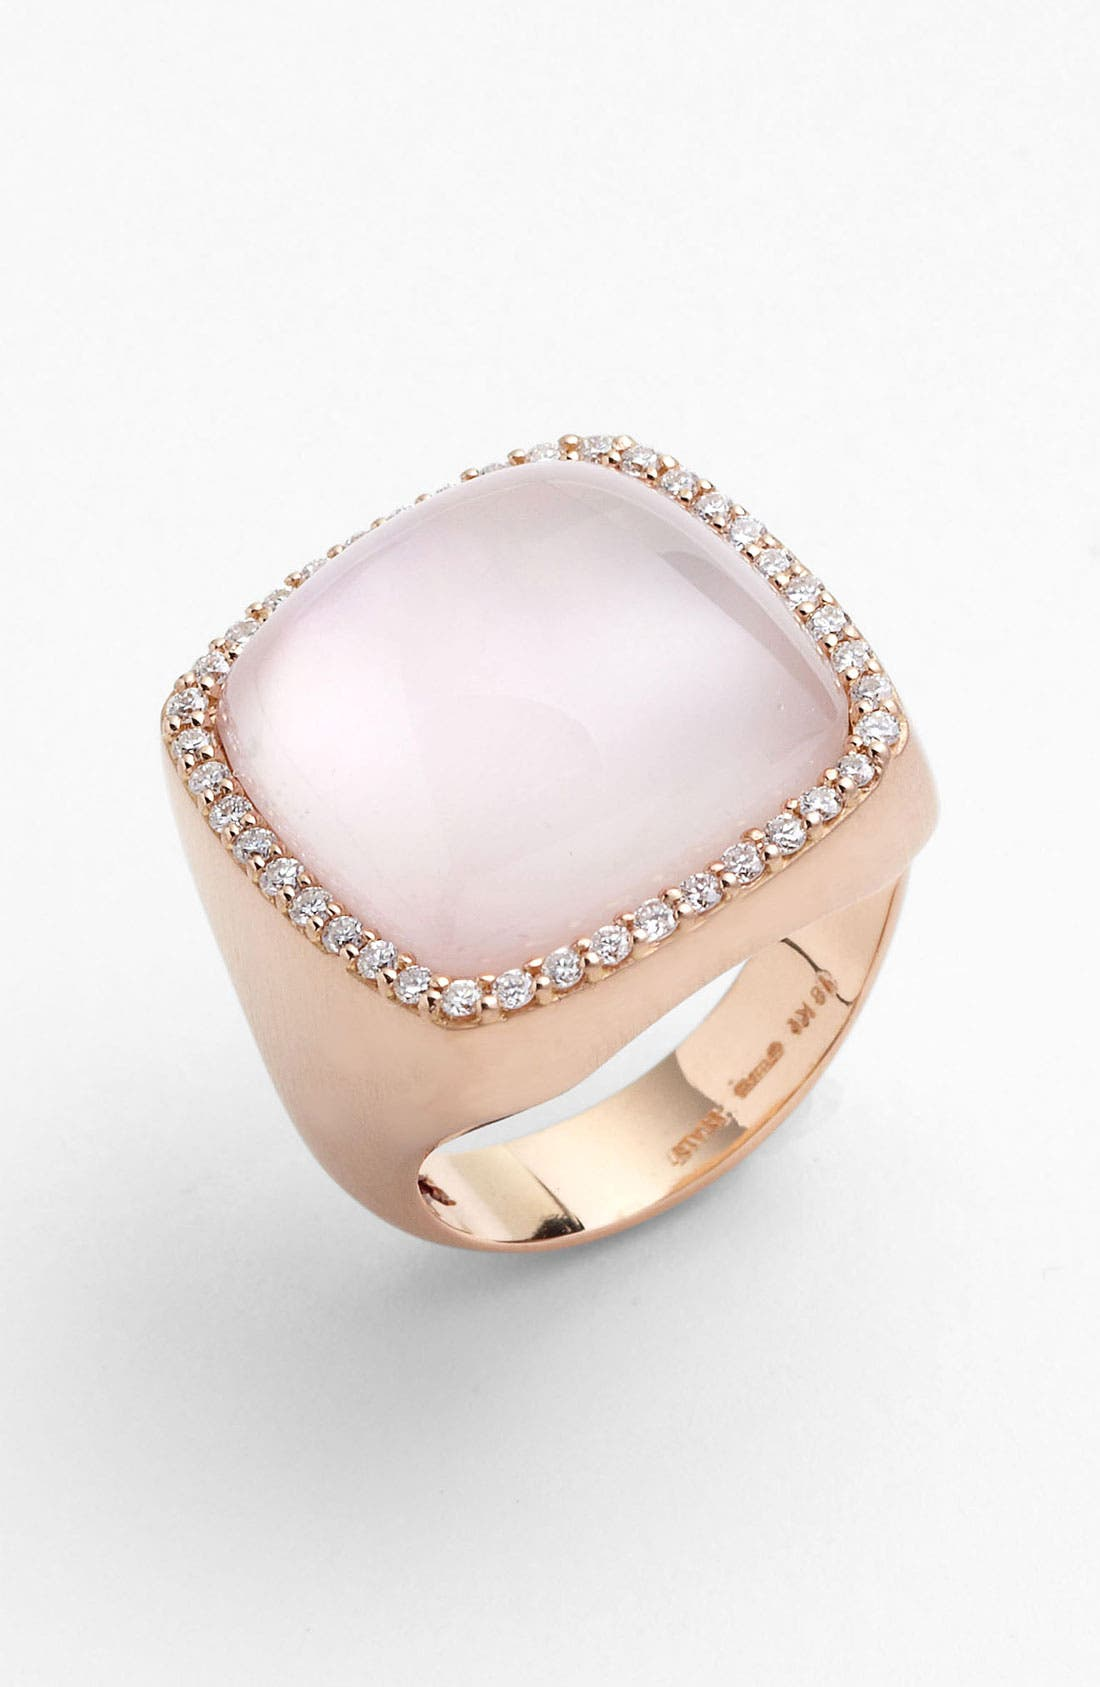 Alternate Image 1 Selected - Roberto Coin Diamond & Square Cut Rose Quartz Ring